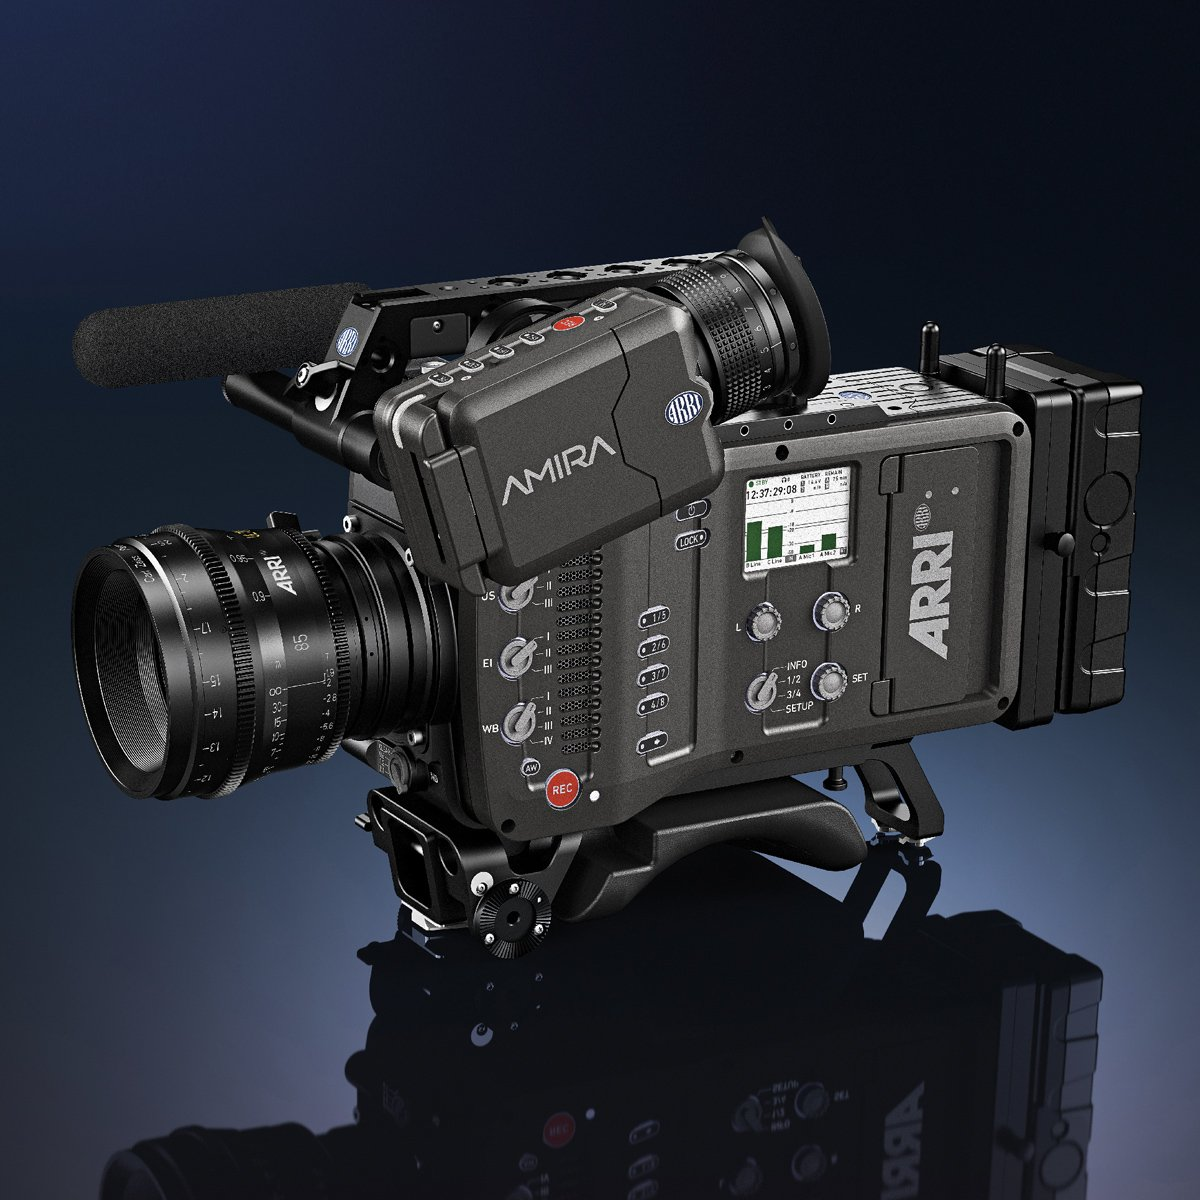 ARRI AMIRA up to 200fps 4K versatile documentary-style camera